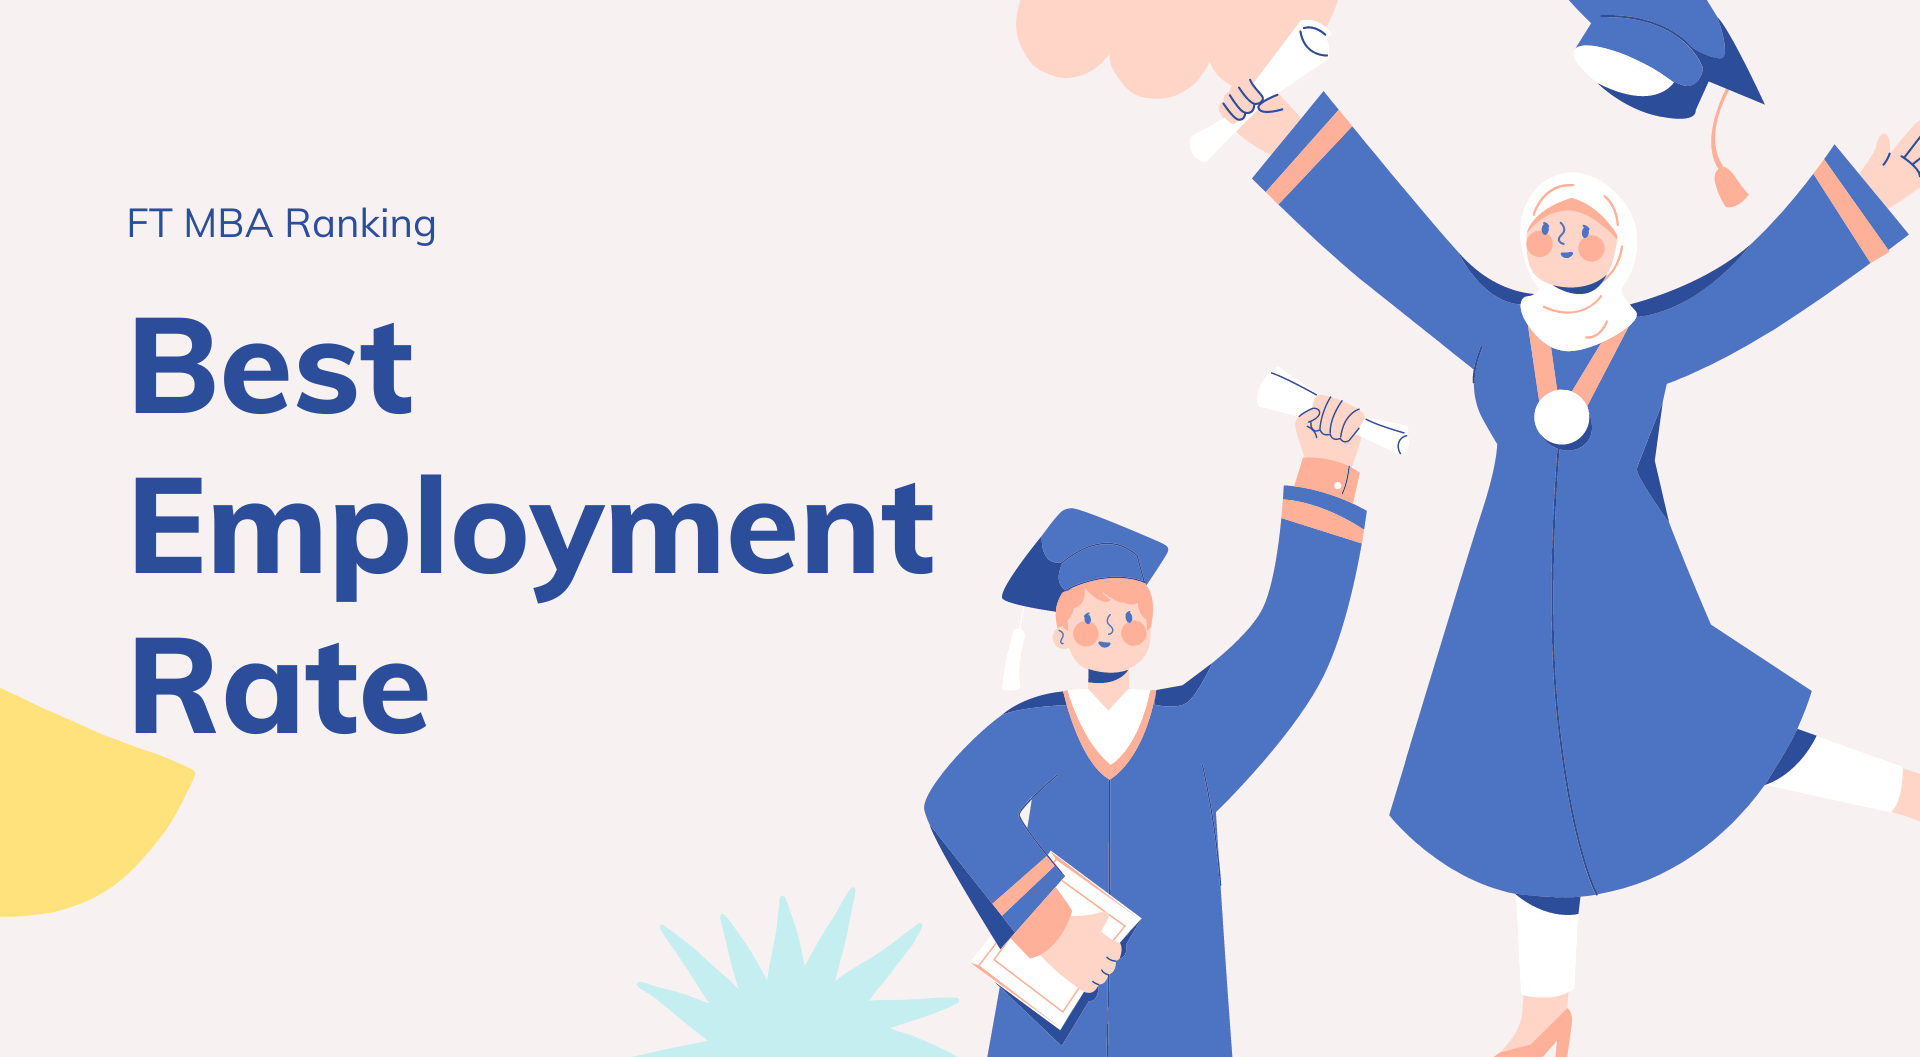 B-Schools with Best Employment Rate